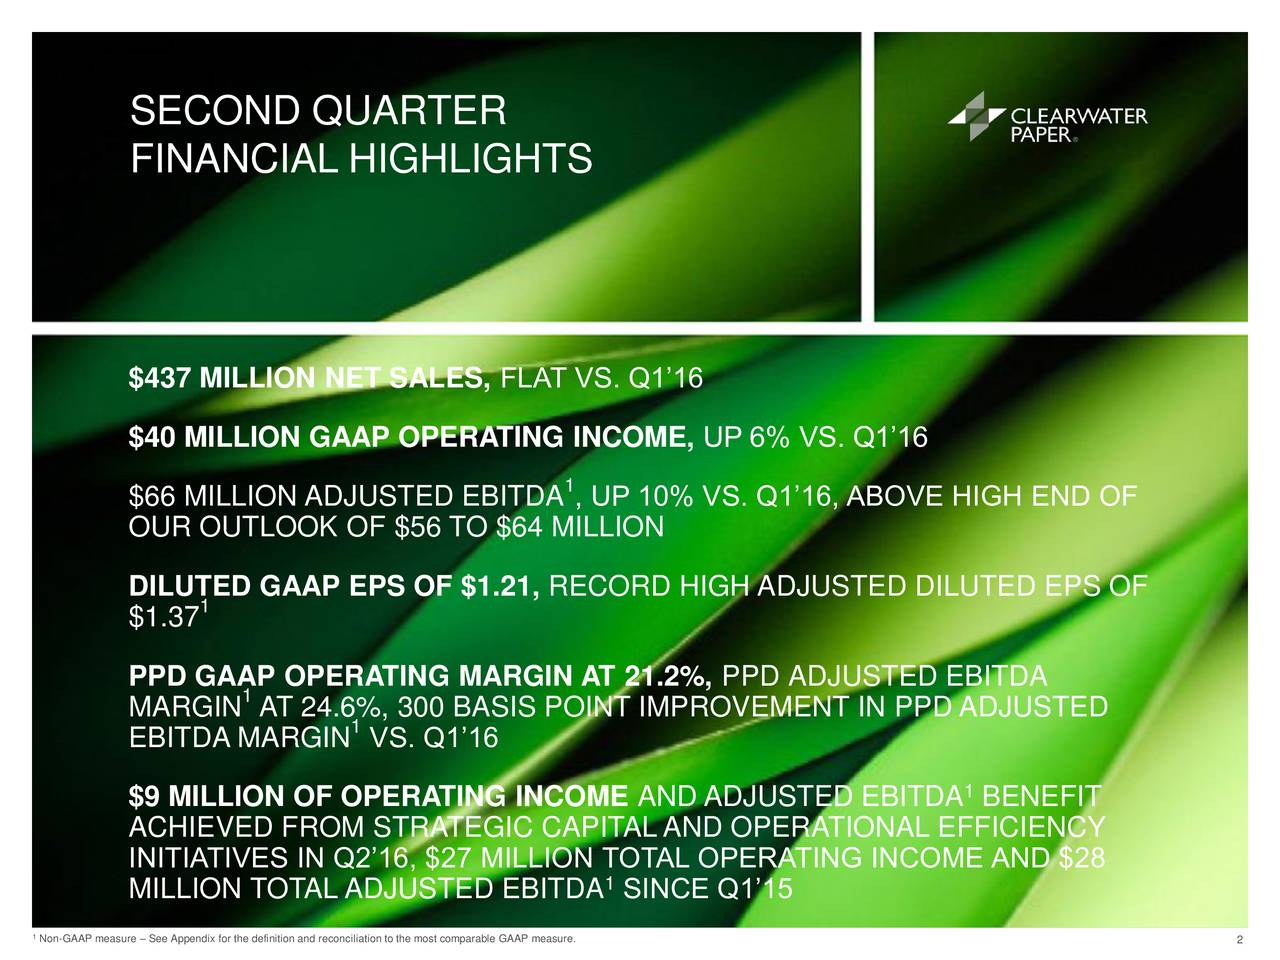 FINANCIAL HIGHLIGHTS $437 MILLION NET SALES, FLAT VS. Q116 $40 MILLION GAAP OPERATING INCOME, UP 6% VS. Q116 1 $66 MILLION ADJUSTED EBITDA , UP 10% VS. Q116, ABOVE HIGH END OF OUR OUTLOOK OF $56 TO $64 MILLION DILUTED GAAP EPS OF $1.21, RECORD HIGH ADJUSTED DILUTED EPS OF 1 $1.37 PPD GAAP OPERATING MARGIN AT 21.2%, PPD ADJUSTED EBITDA 1 MARGIN AT 24.6%, 100 BASIS POINT IMPROVEMENT IN PPD ADJUSTED EBITDA MARGIN VS. Q116 $9 MILLION OF OPERATING INCOME AND ADJUSTED EBITDA BENEFIT 1 ACHIEVED FROM STRATEGIC CAPITALAND OPERATIONAL EFFICIENCY INITIATIVES IN Q216, $27 MILLION TOTAL OPERATING INCOME AND $28 MILLION TOTAL ADJUSTED EBITDA SINCE Q115 1Non-GAAP measure  See Appendix for the definition and reconciliation to the most compar2ble GAAP measure.